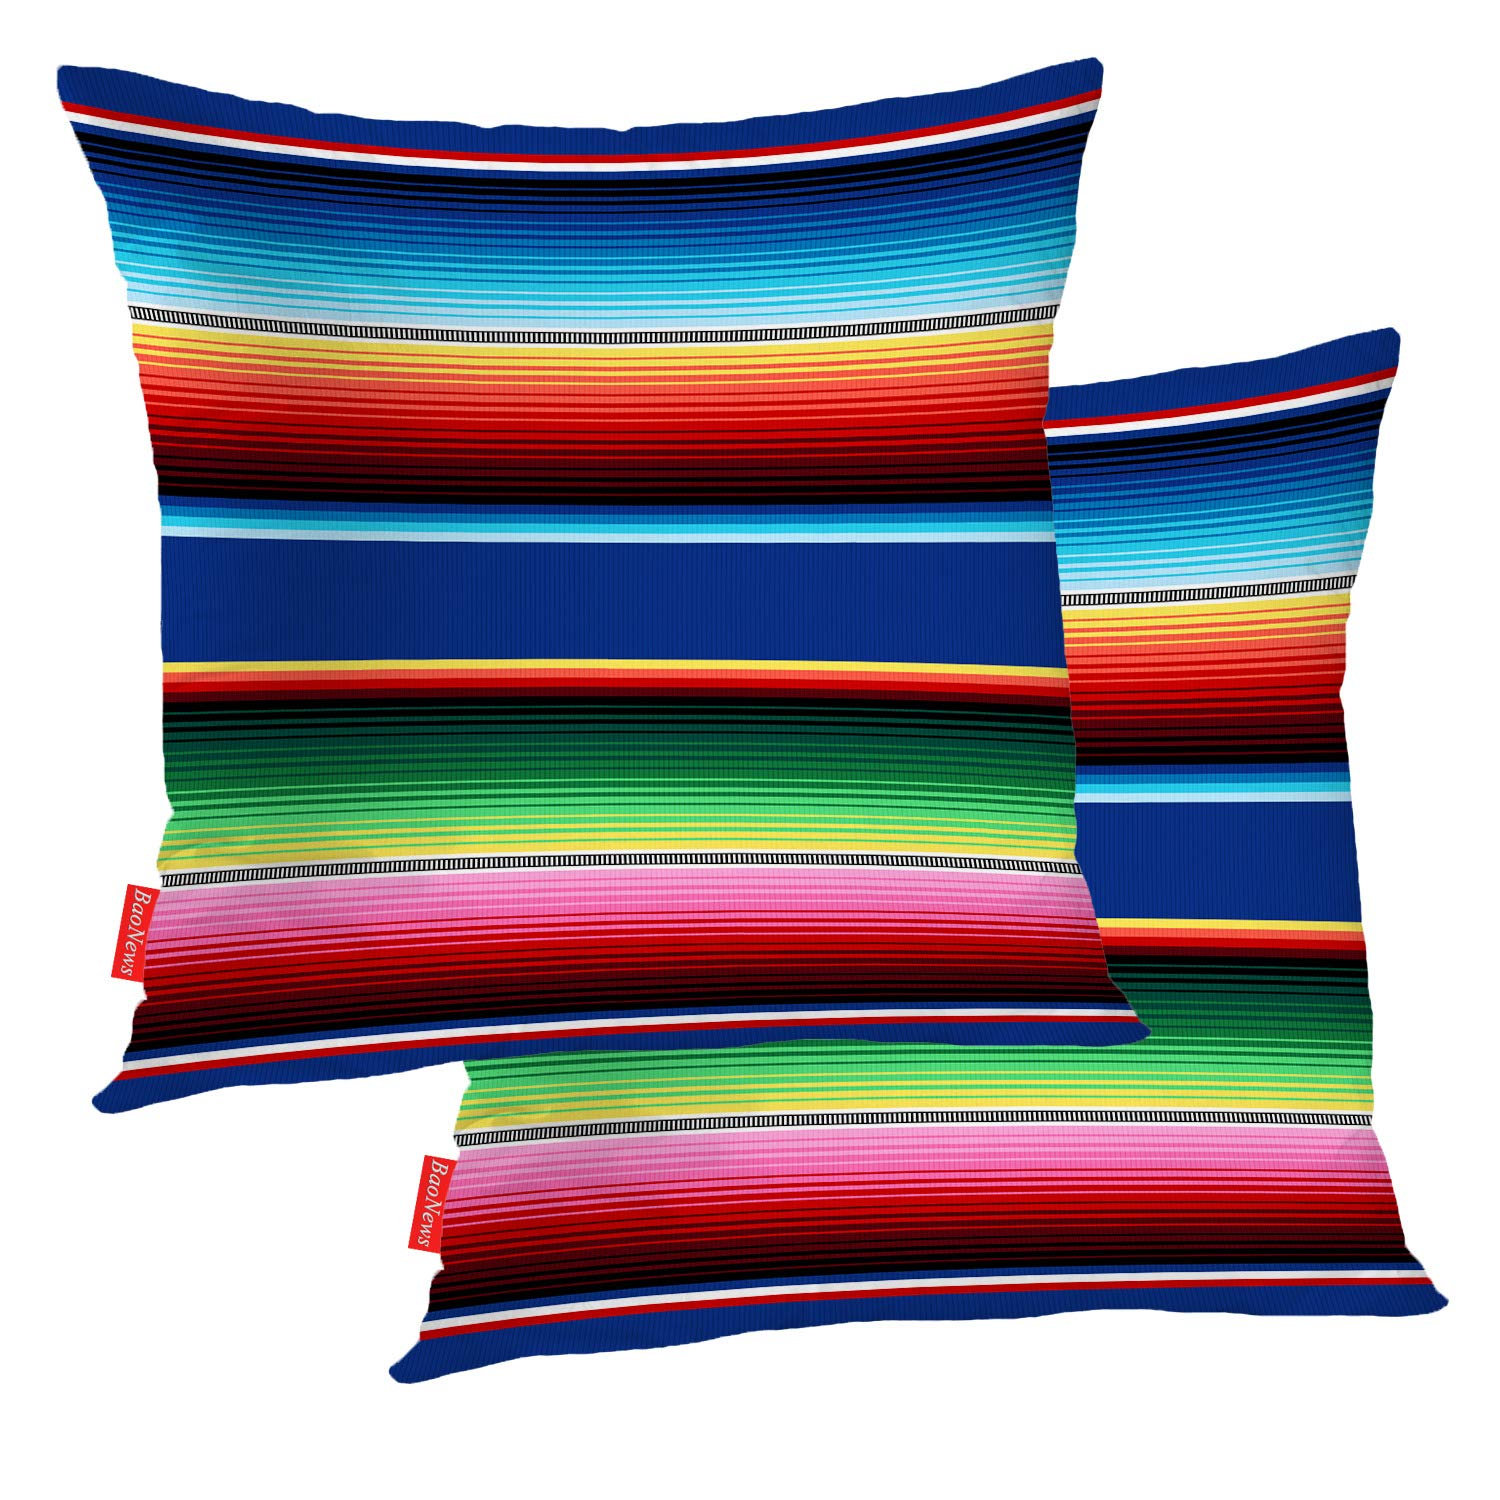 BaoNews Mexican Colorful Pillow Covers, Stripes Pattern Party Decor Ethnic Mexican Fabric Square 18 x 18 Inches Decorative Throw Pillow Covers Cotton Cushion for Sofa Bedroom Car, Yellow, Set of 2